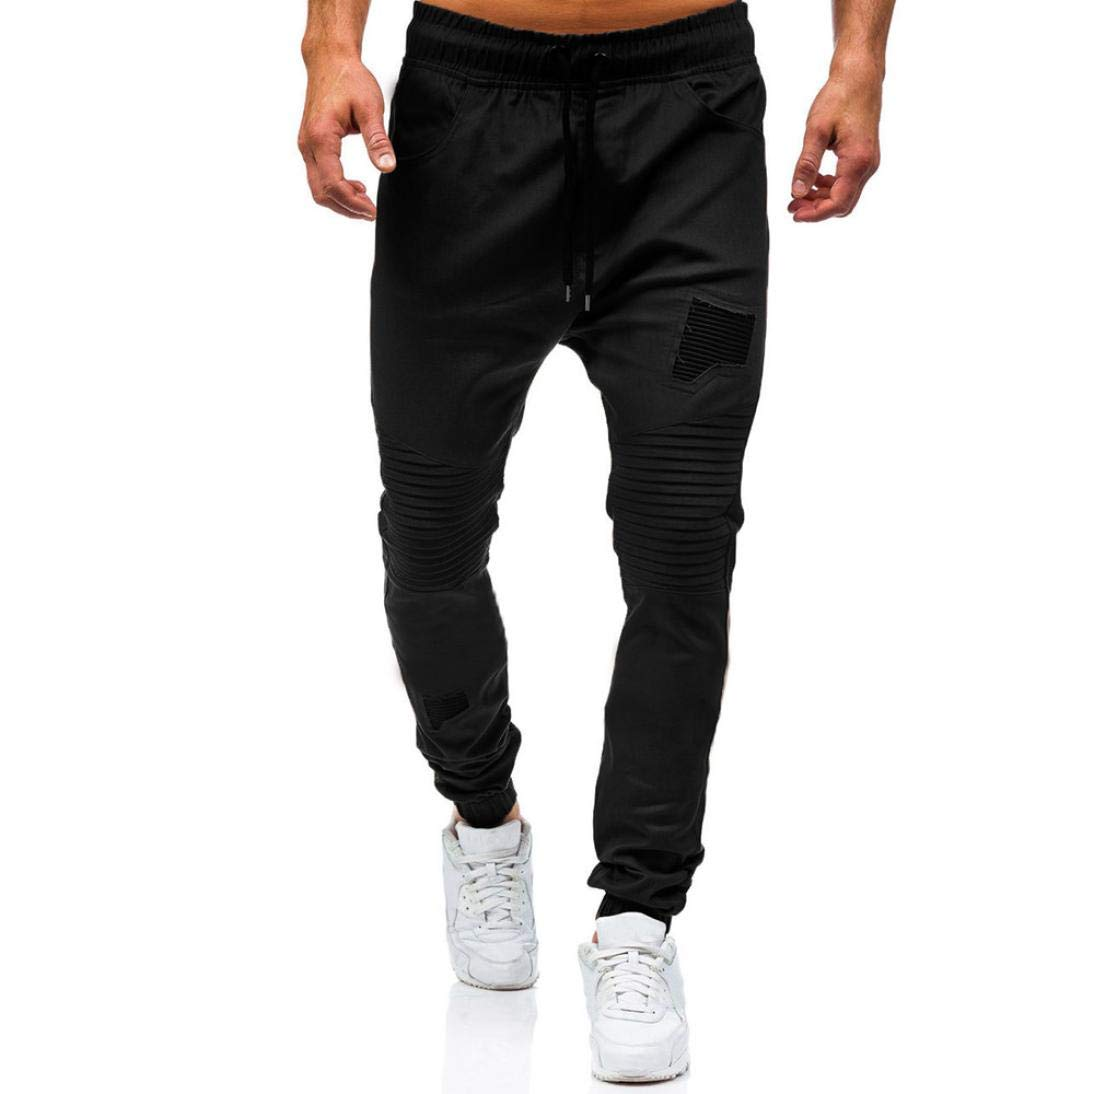 SCSAlgin Men's Drawstring Classic Joggers Pants Zipper Pockets Sport Sweat Basic Jogger Fleece Pants (Black, L)